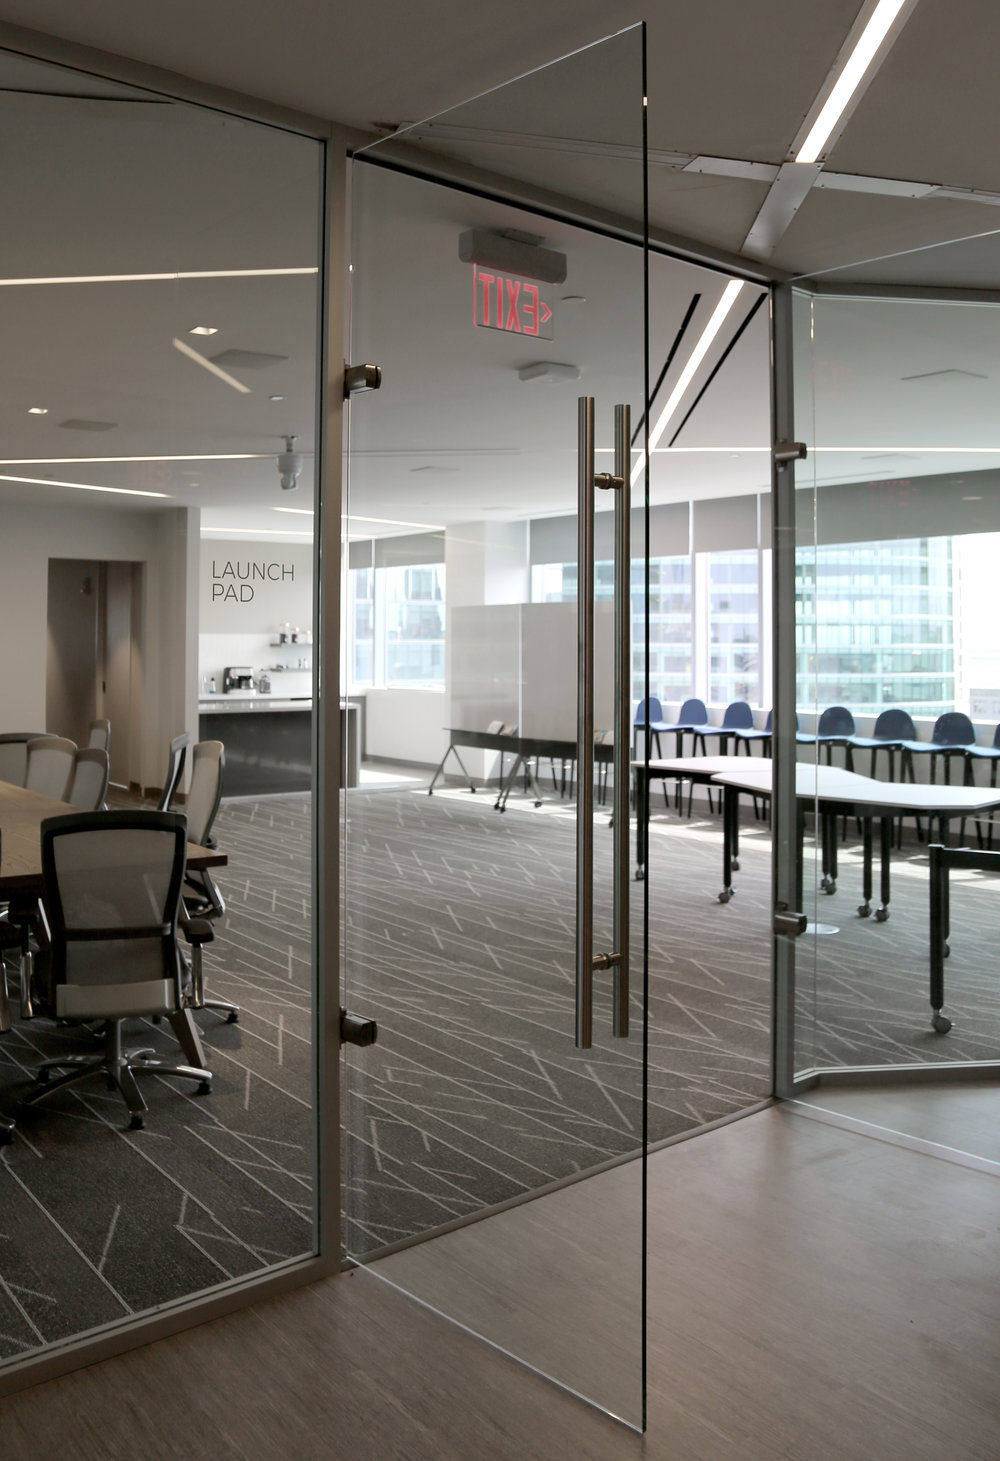 Litespace Reception Frameless Glass Double Door Aluminum Framed System - Spaceworks AI.jpg